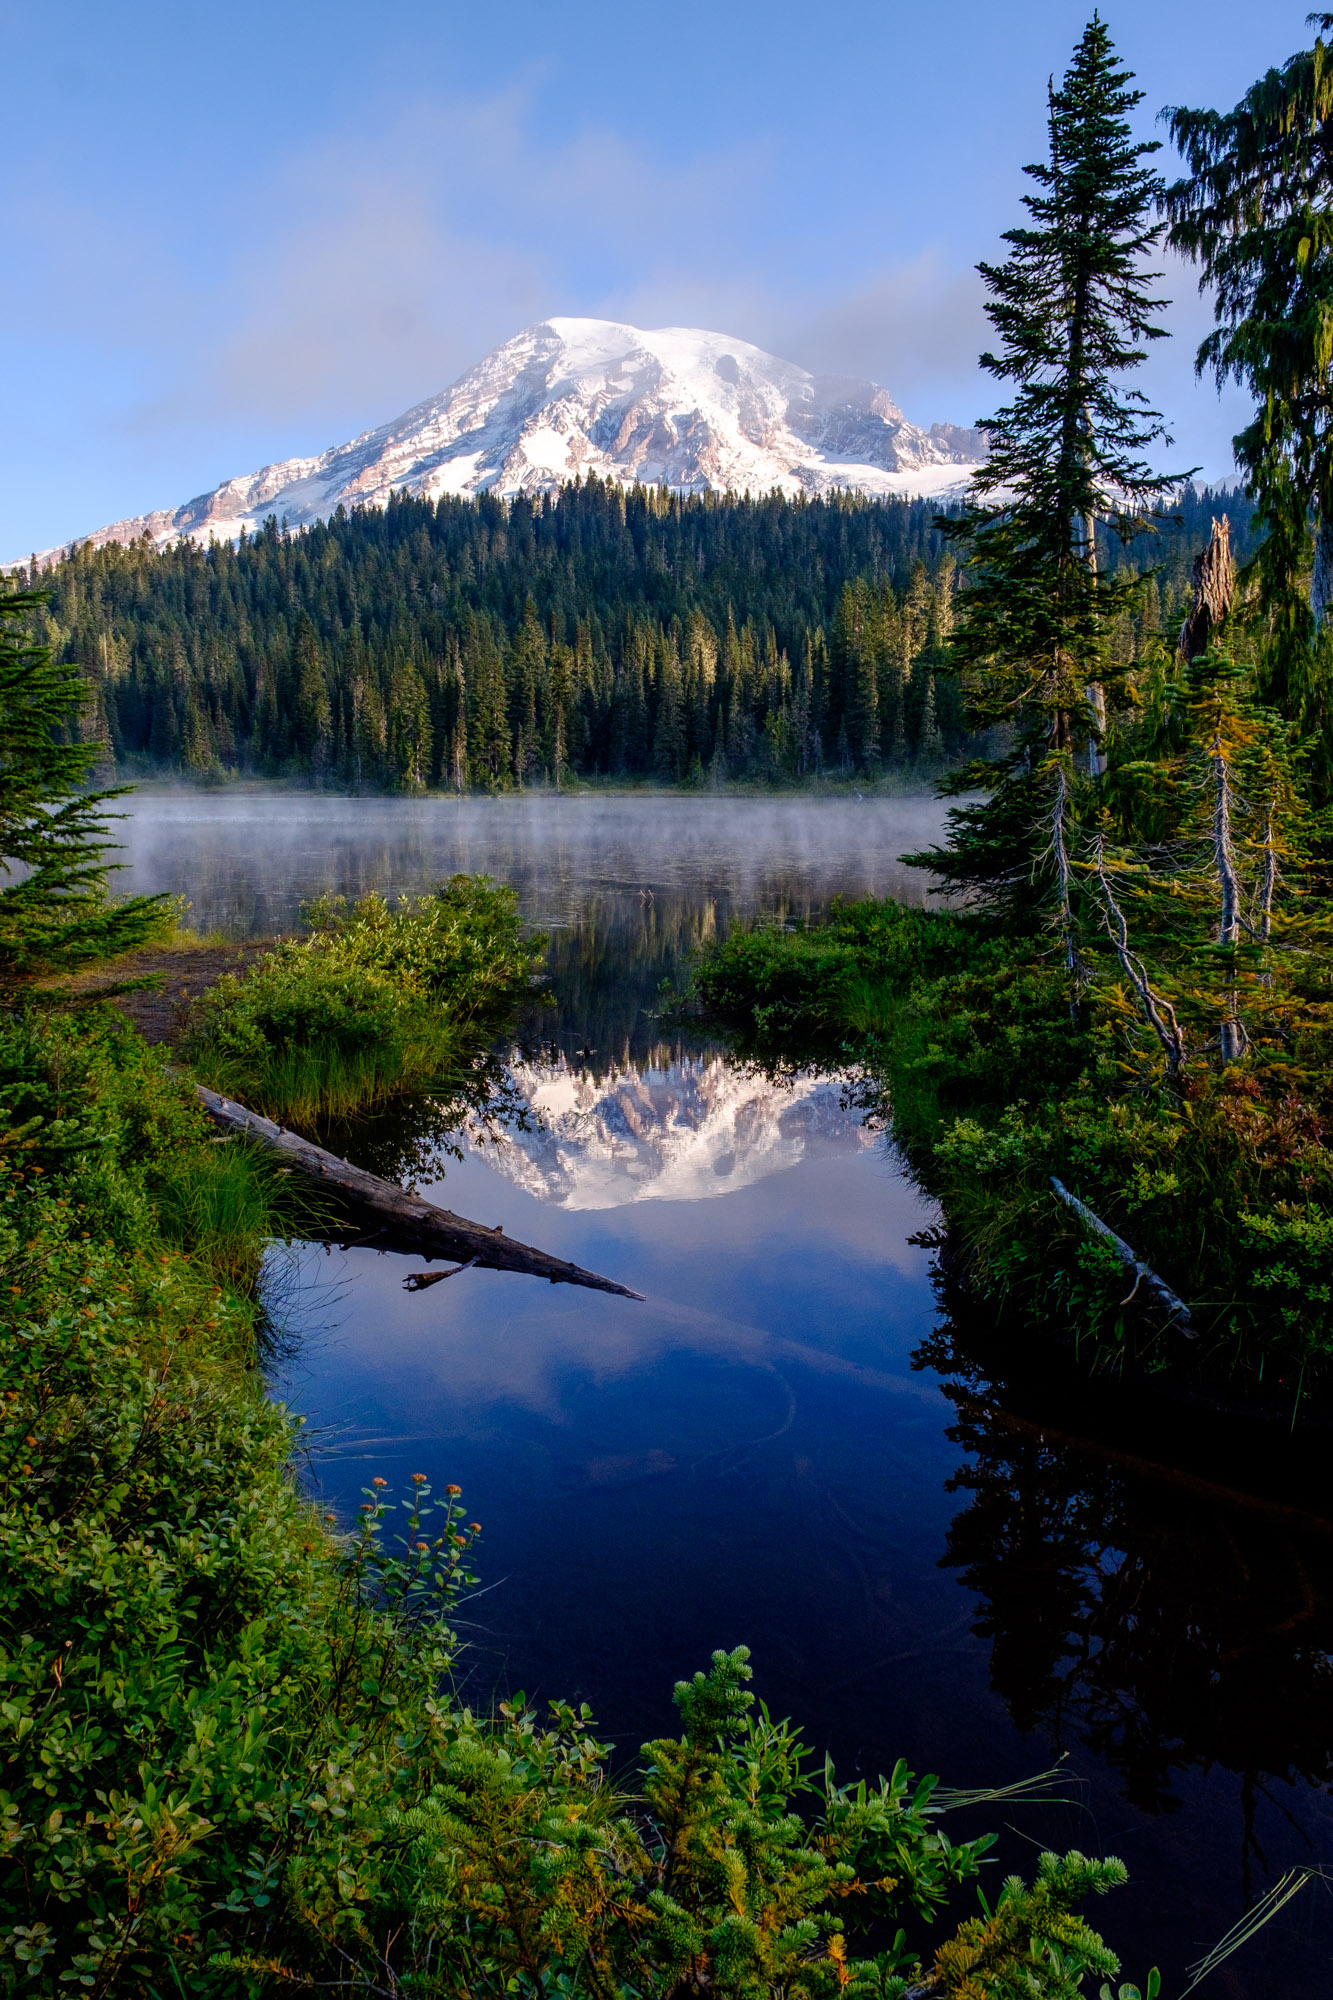 Mount Rainier reflected in a small pond near Reflection lakes.